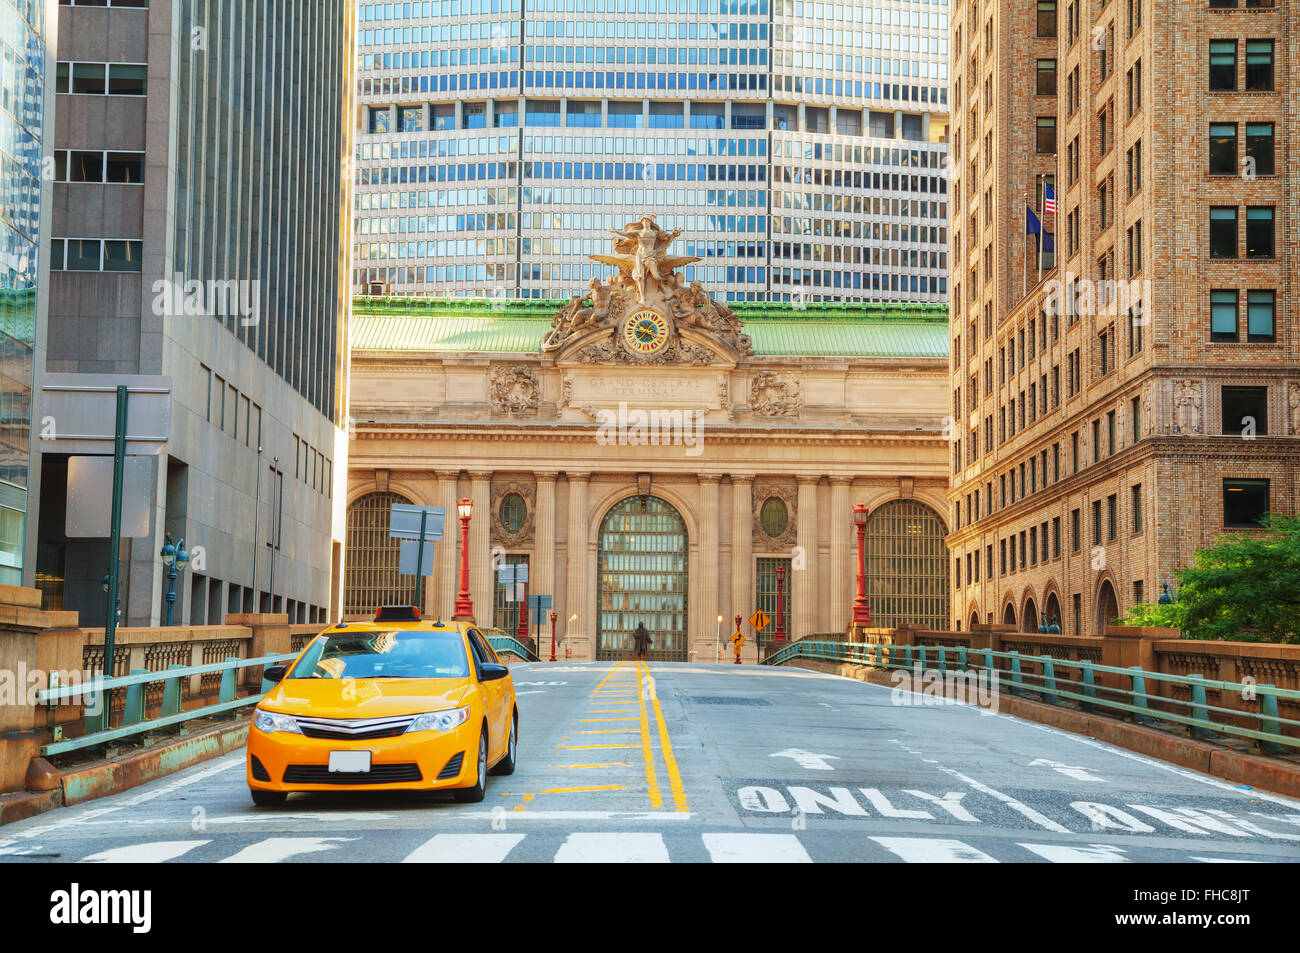 Grand Central Terminal viaduc and old entrance in New York - Stock Image